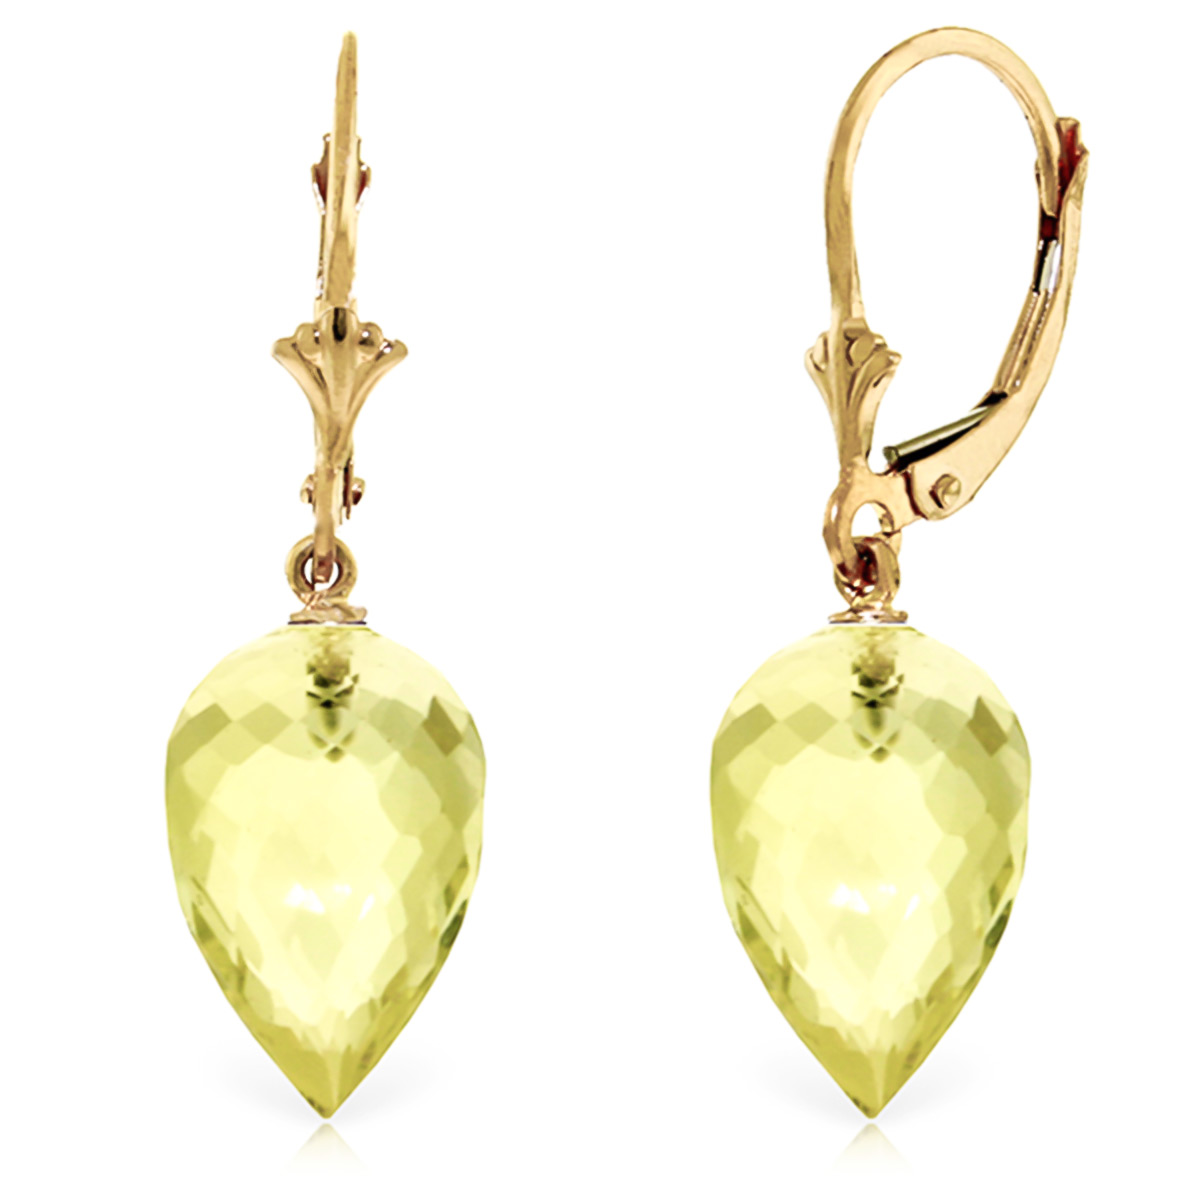 Lemon Quartz Briolette Drop Earrings 18 ctw in 9ct Gold